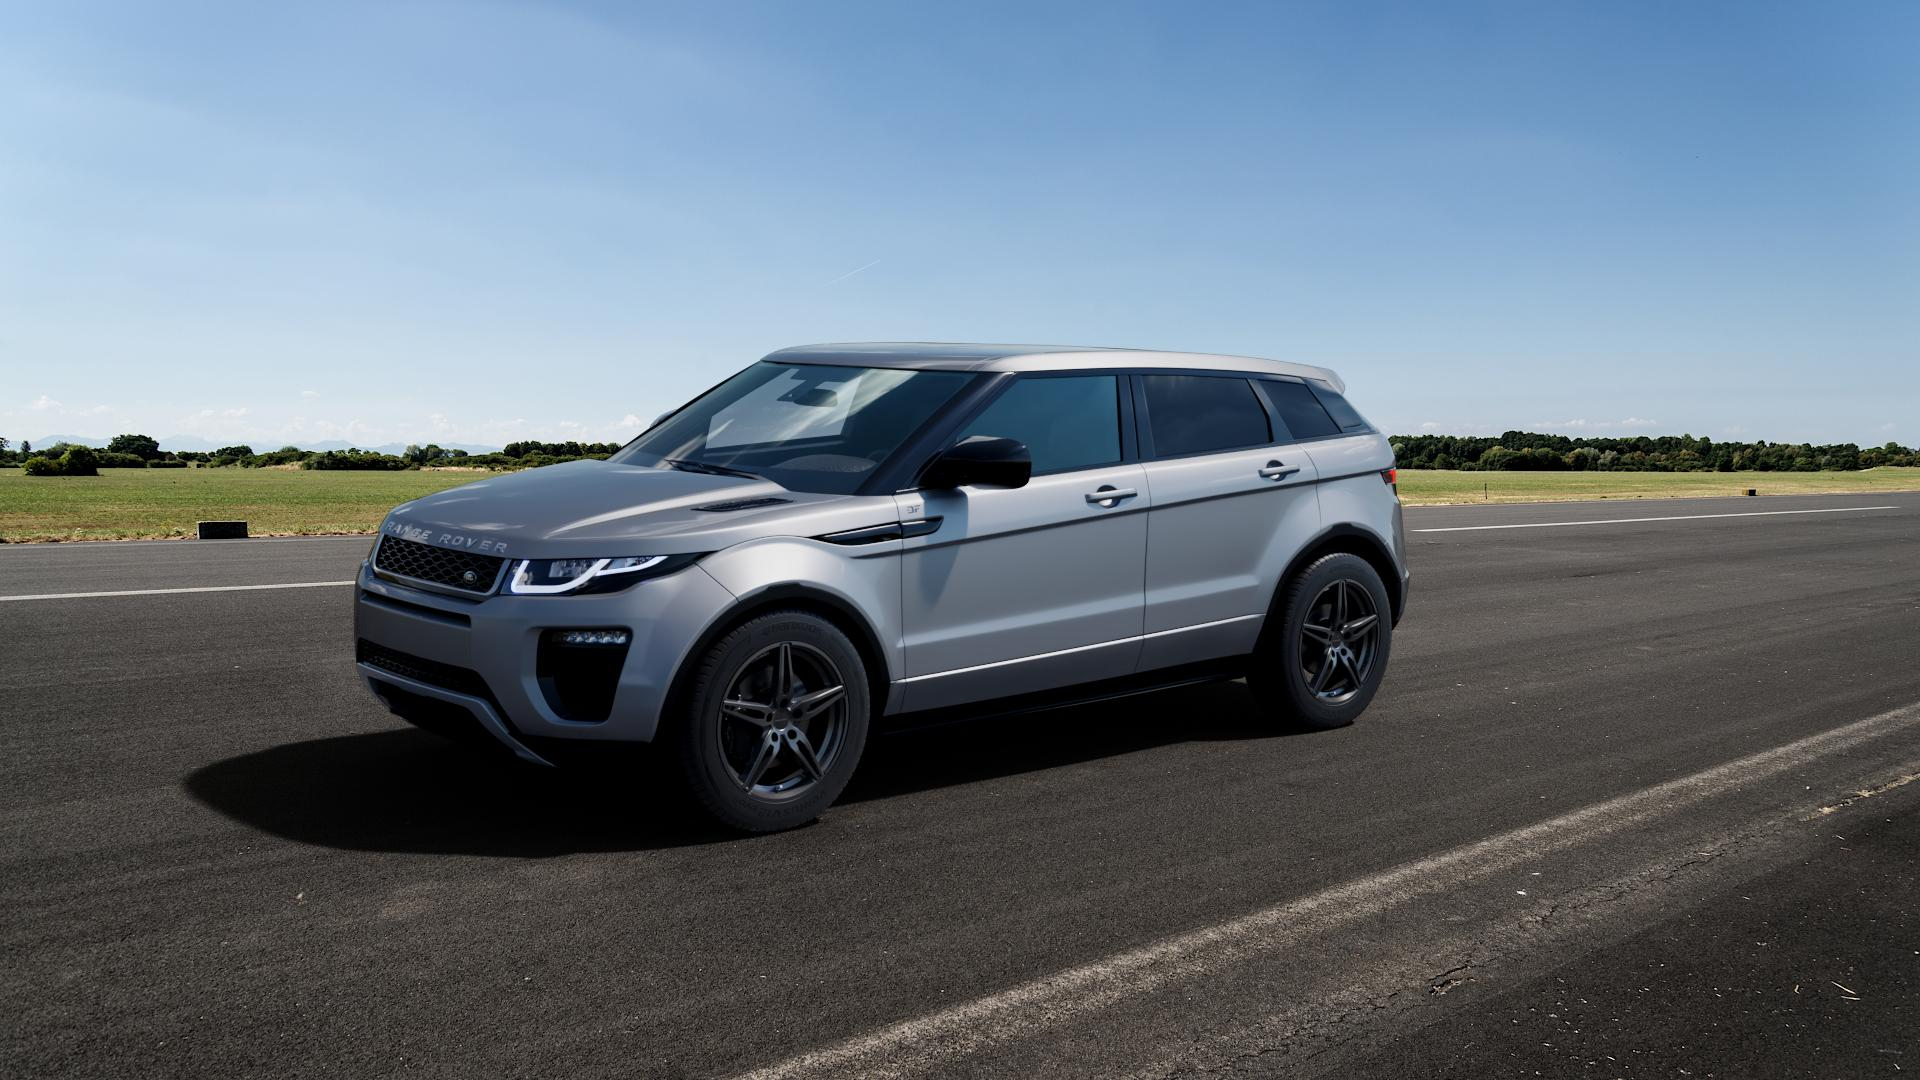 CARMANI 15 Oskar hyper gun Felge mit Reifen silber in 18Zoll Winterfelge Alufelge auf silbernem Land Rover Range Evoque Typ LV Facelift ⬇️ mit 15mm Tieferlegung ⬇️ Big_Vehicle_Airstrip_1 Frontansicht_1